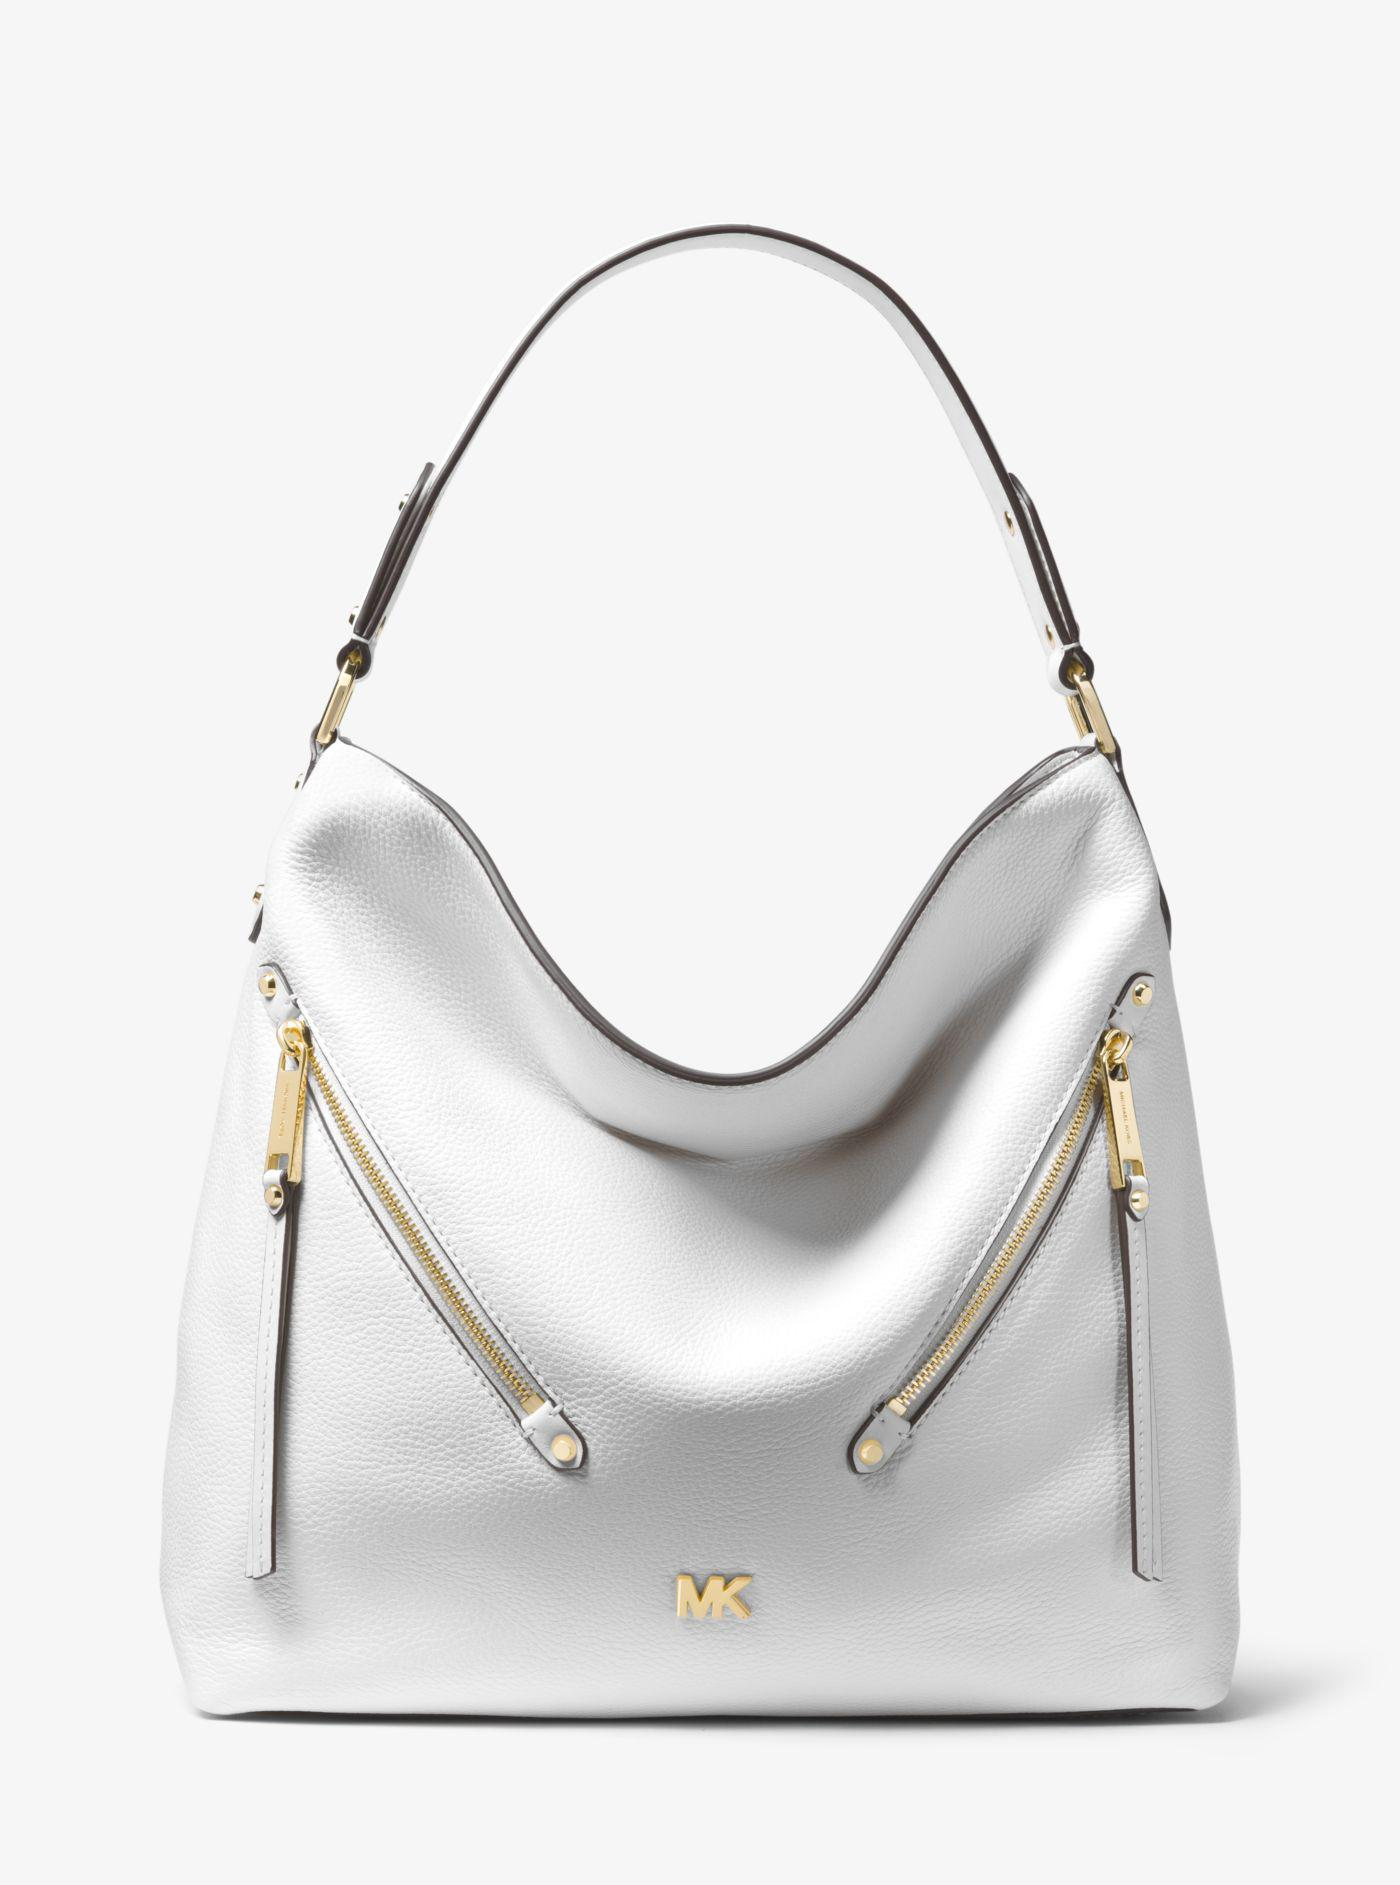 2a1c885f101c Michael Kors Evie Large Pebbled Leather Shoulder Bag in White - Lyst